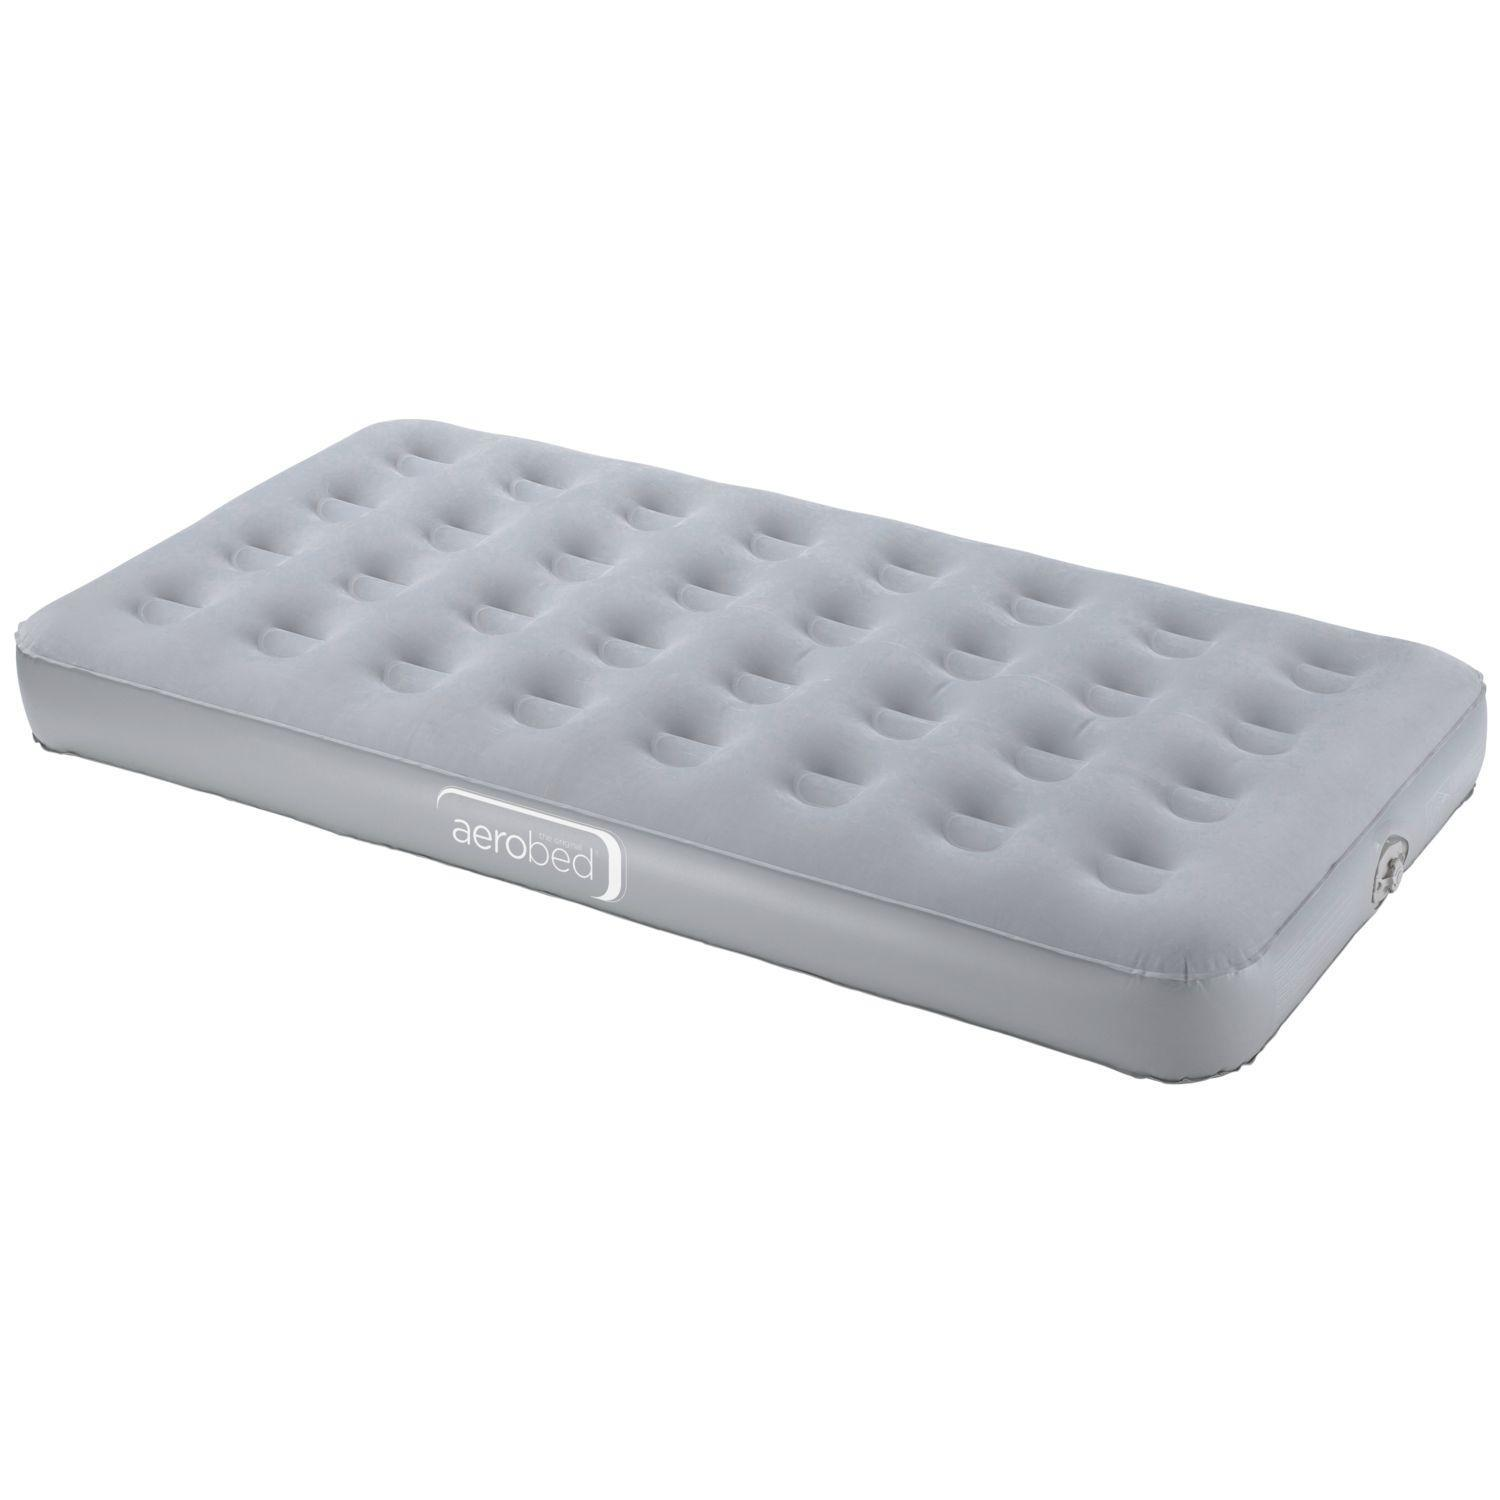 ... Classic Inflatable Air Mattress Single: Aerobed ...